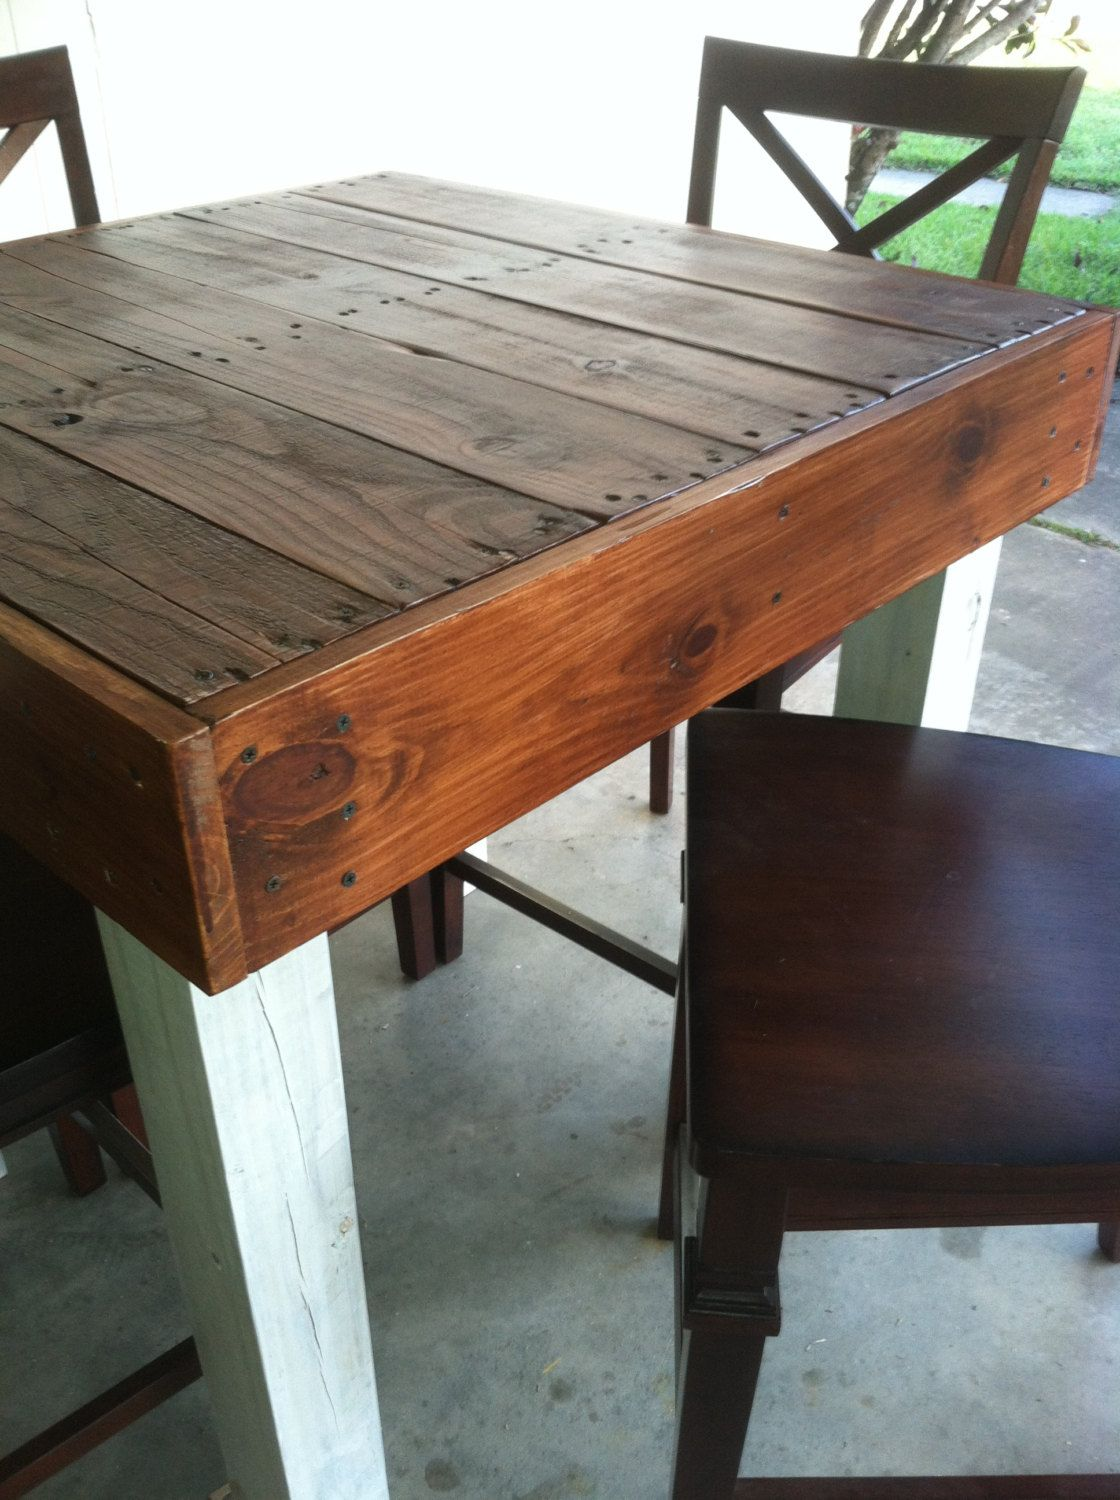 Reclaimed wood dining table upcycled pub size pallet for Upcycled dining table